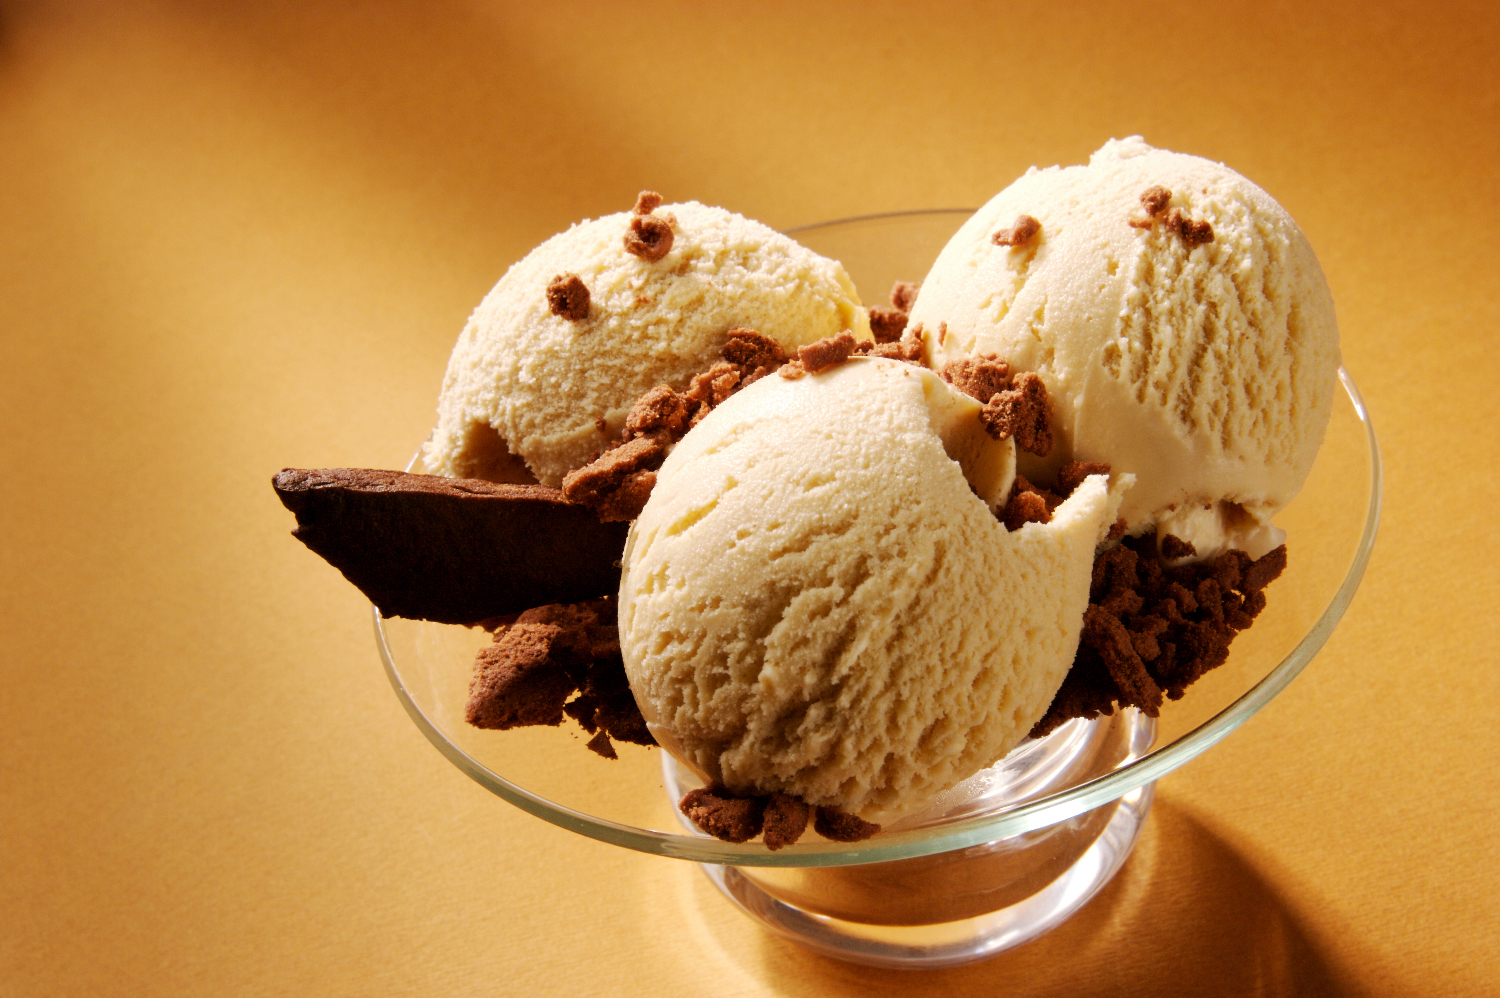 Cold Chocolate Ice-Cream - Chocolate Photo (34691489) - Fanpop